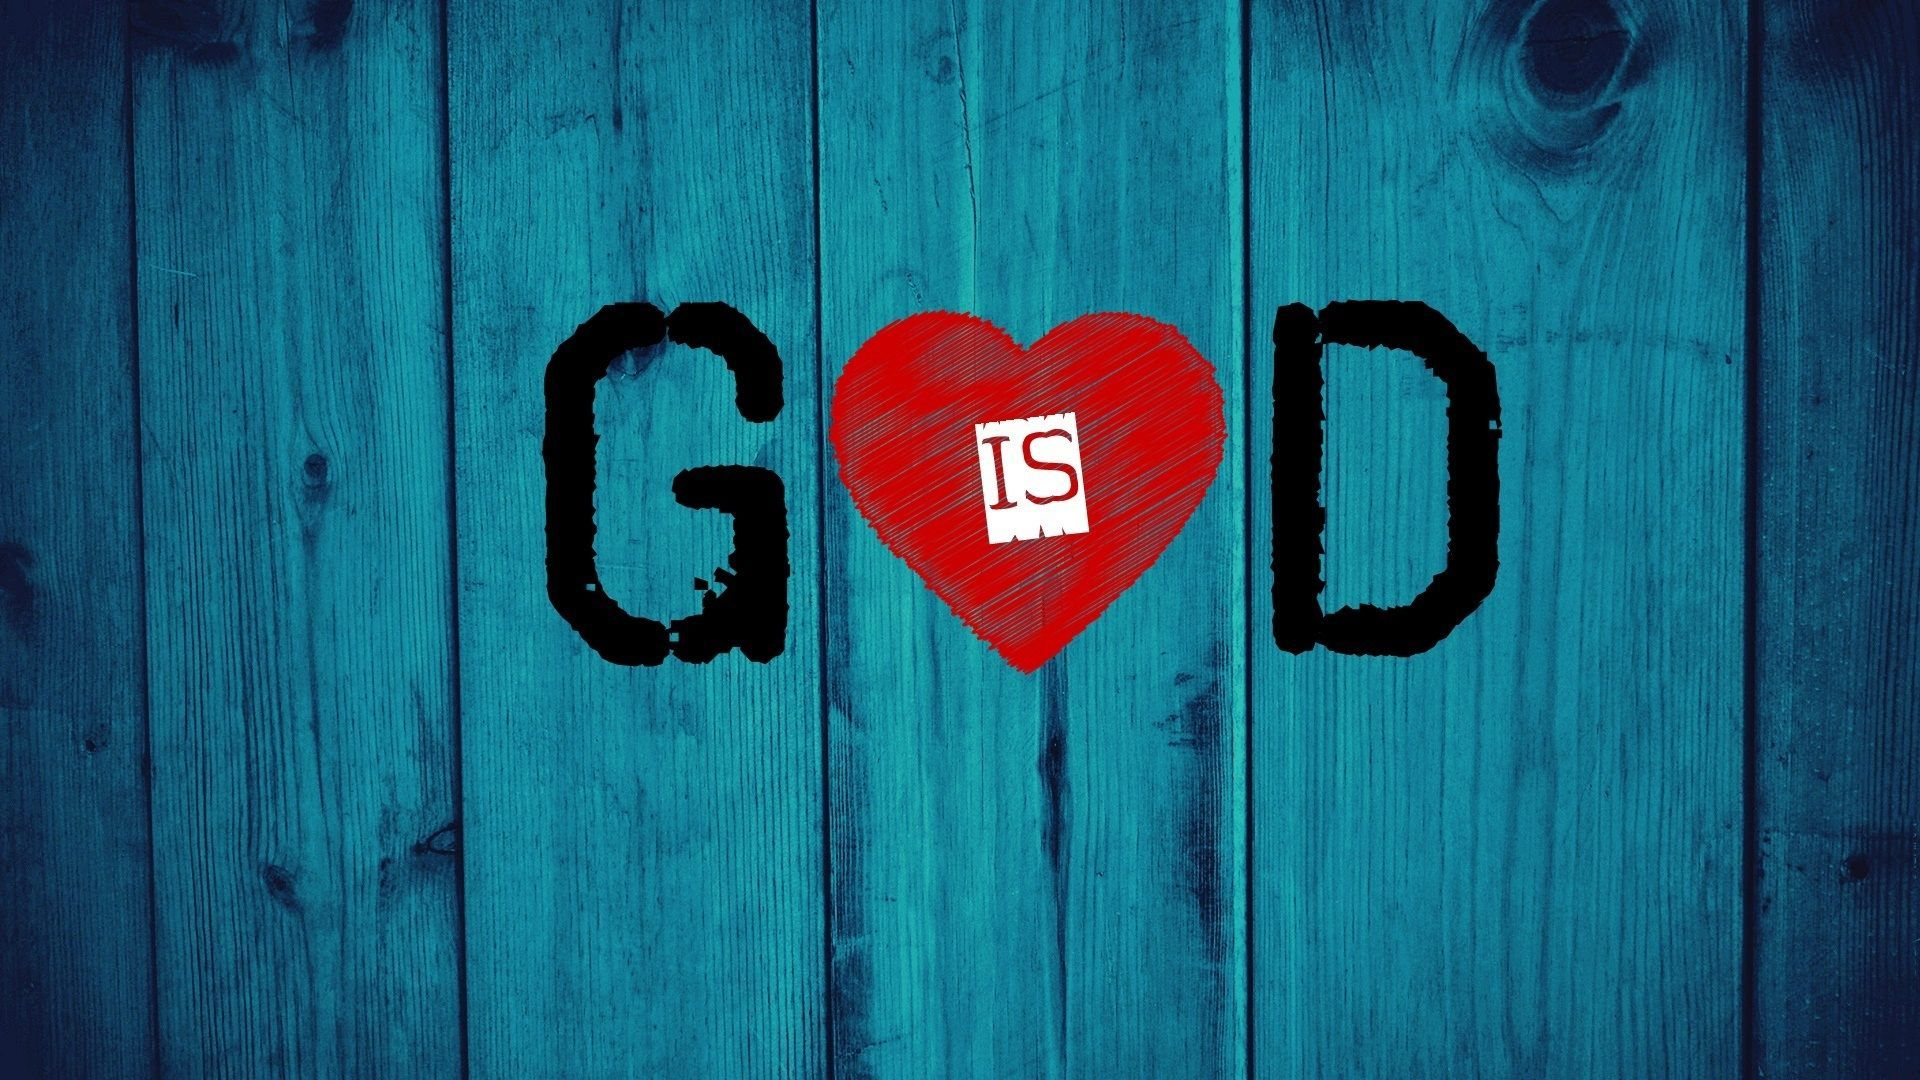 God is Love Wallpaper HD Download To Show Love Of God Epic car Wallpapers Pinterest Wallpaper